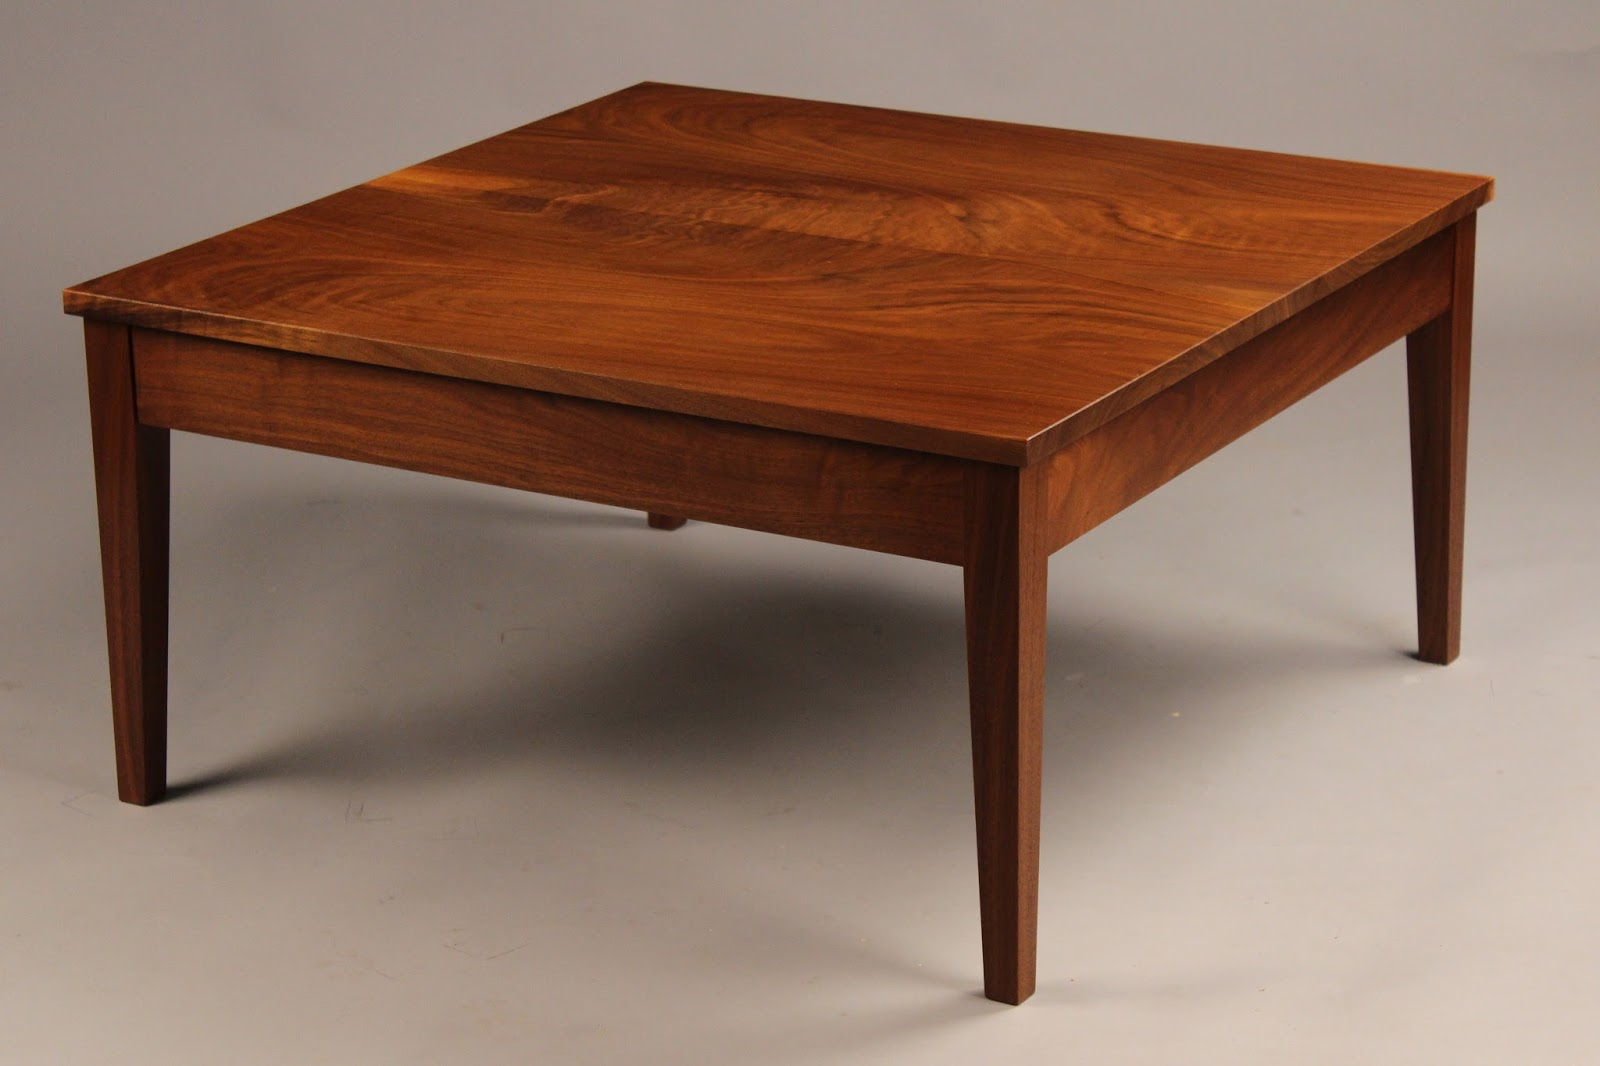 Doucette and wolfe fine furniture makers custom coffee table Handcrafted coffee table